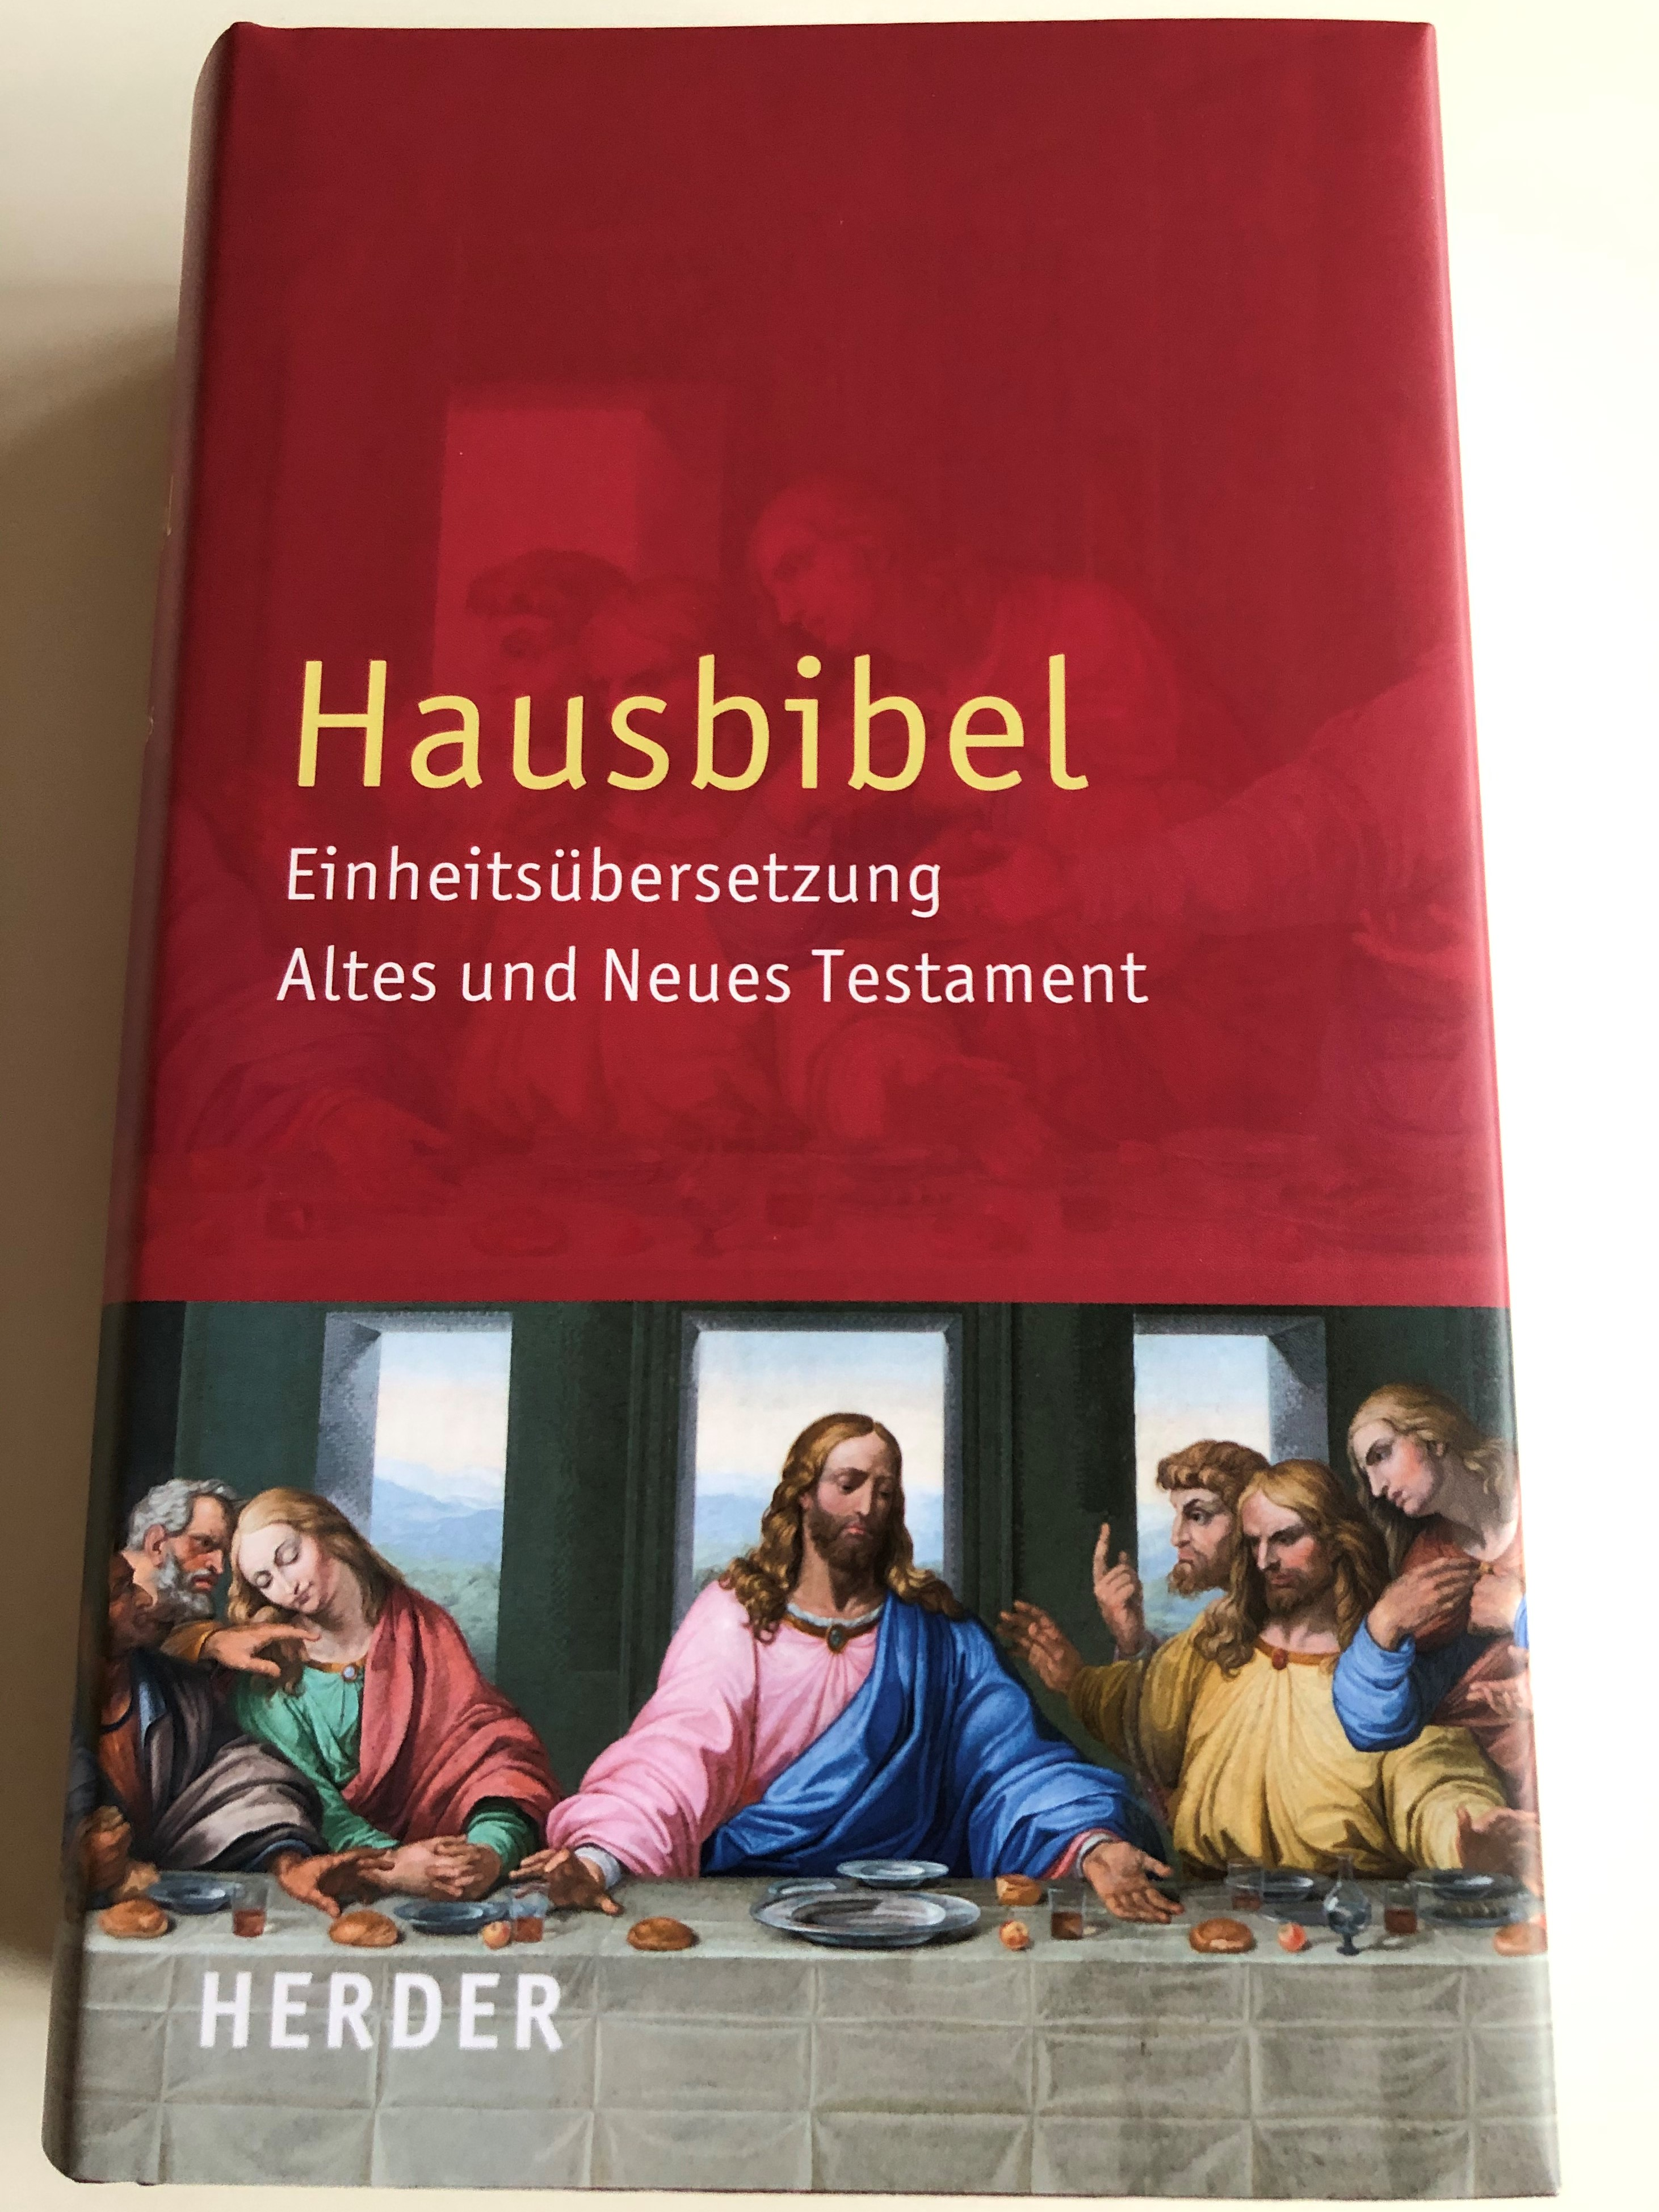 hausbibel-german-language-family-bible-einheits-bersetzung-1.jpg